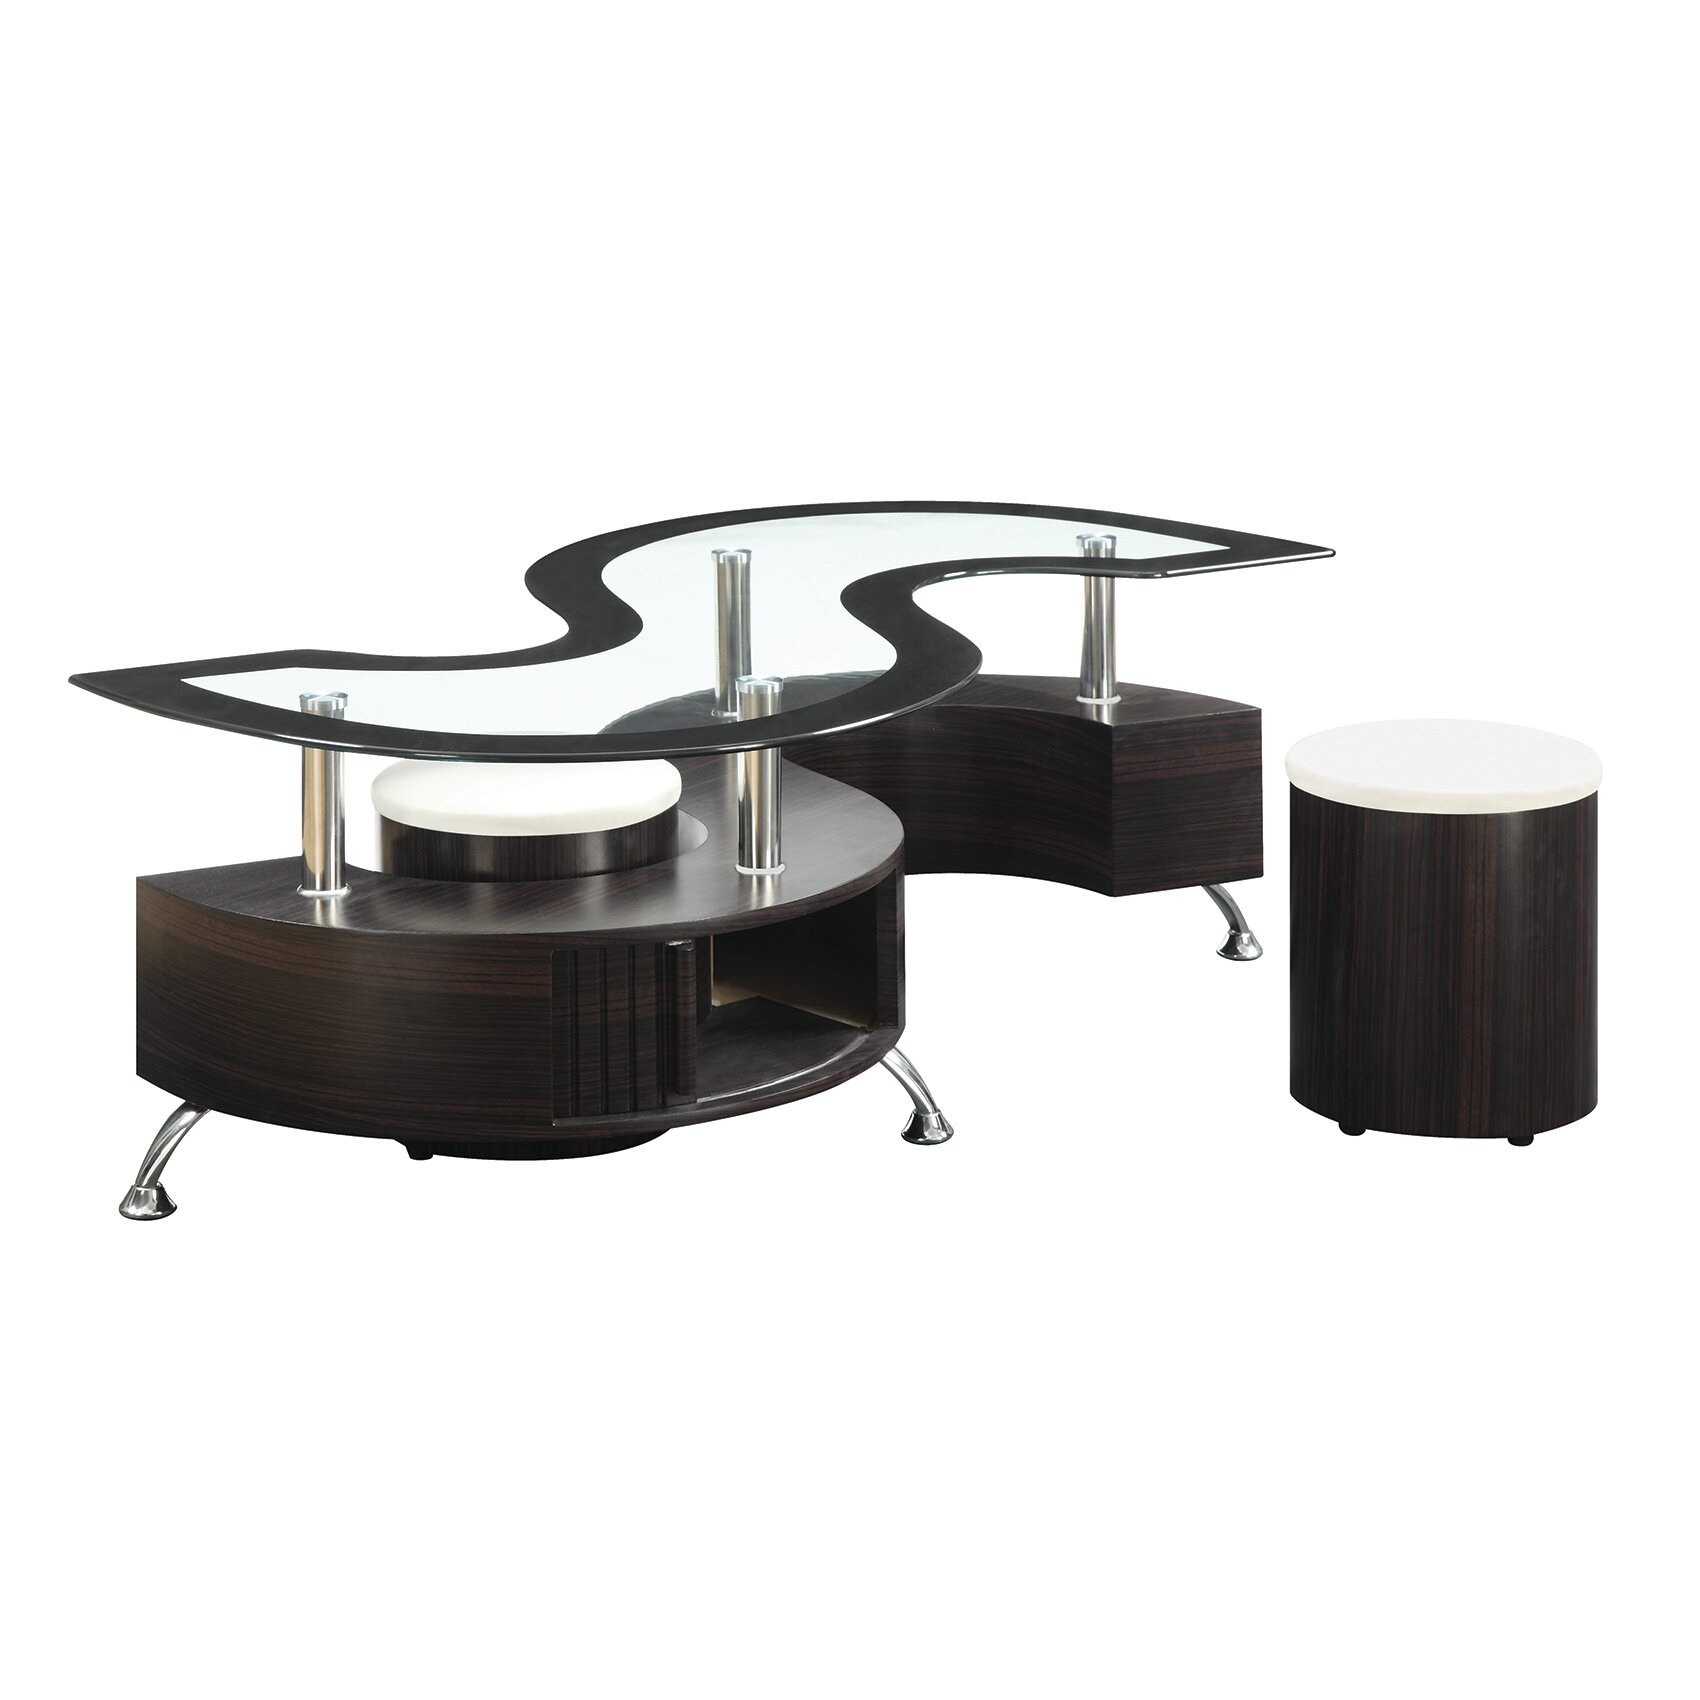 Wildon home 3 piece coffee table set reviews for Coffee tables 3 piece